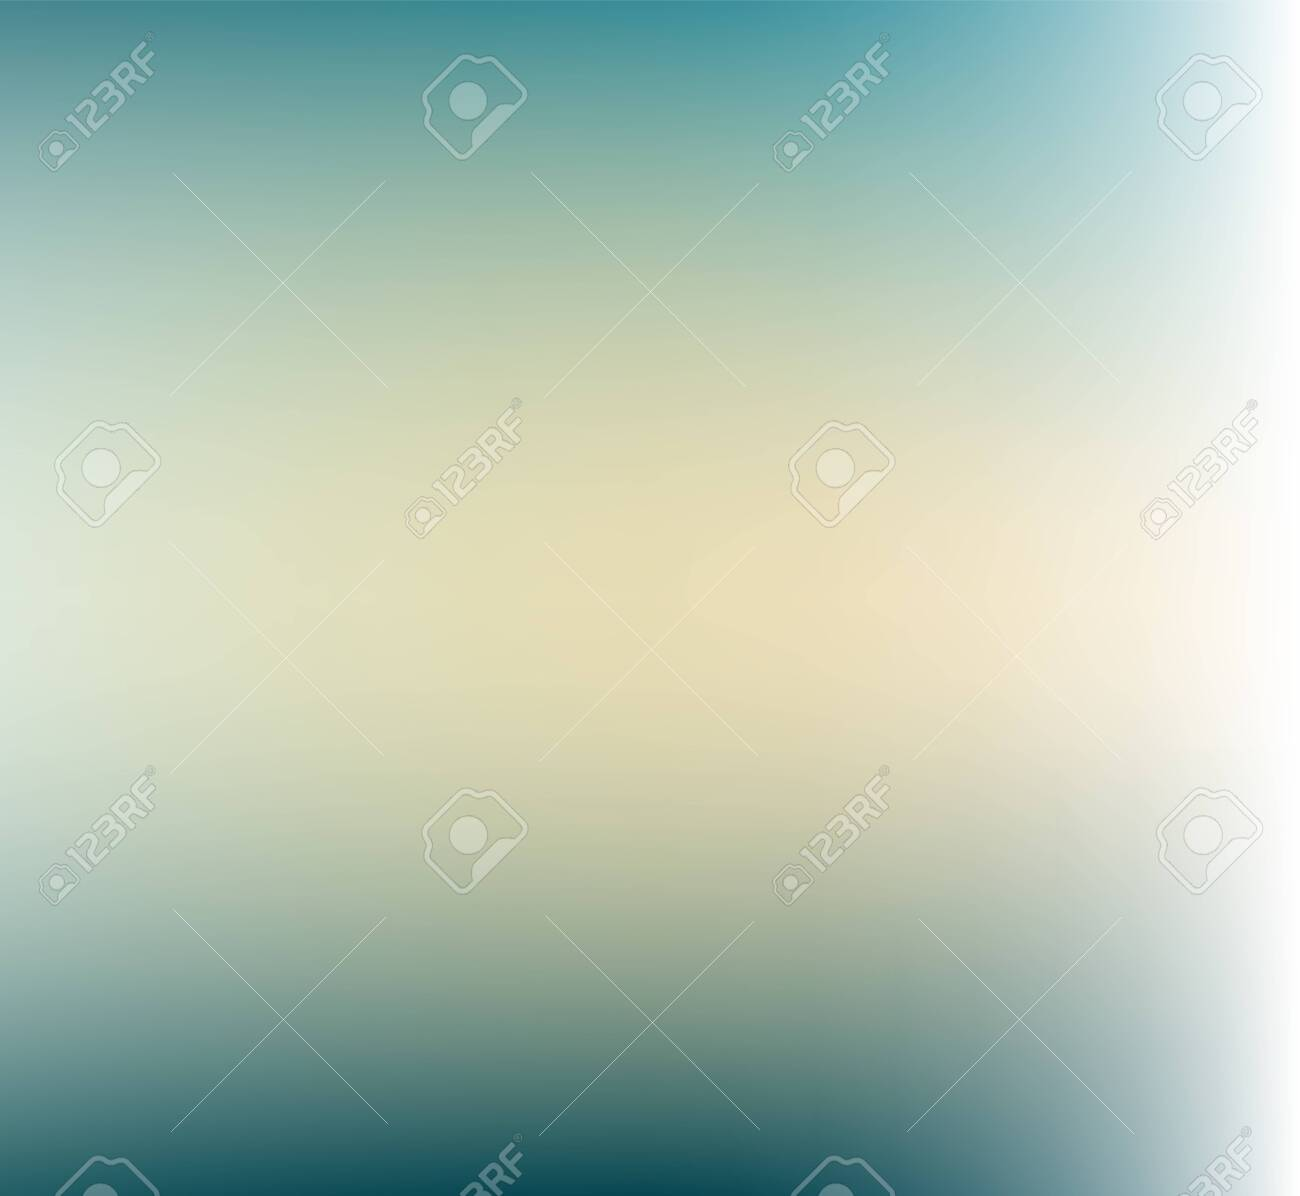 Soft Green gradients color background. Modern screen vector design for mobile app, web, infographic, brochure. - 147903068